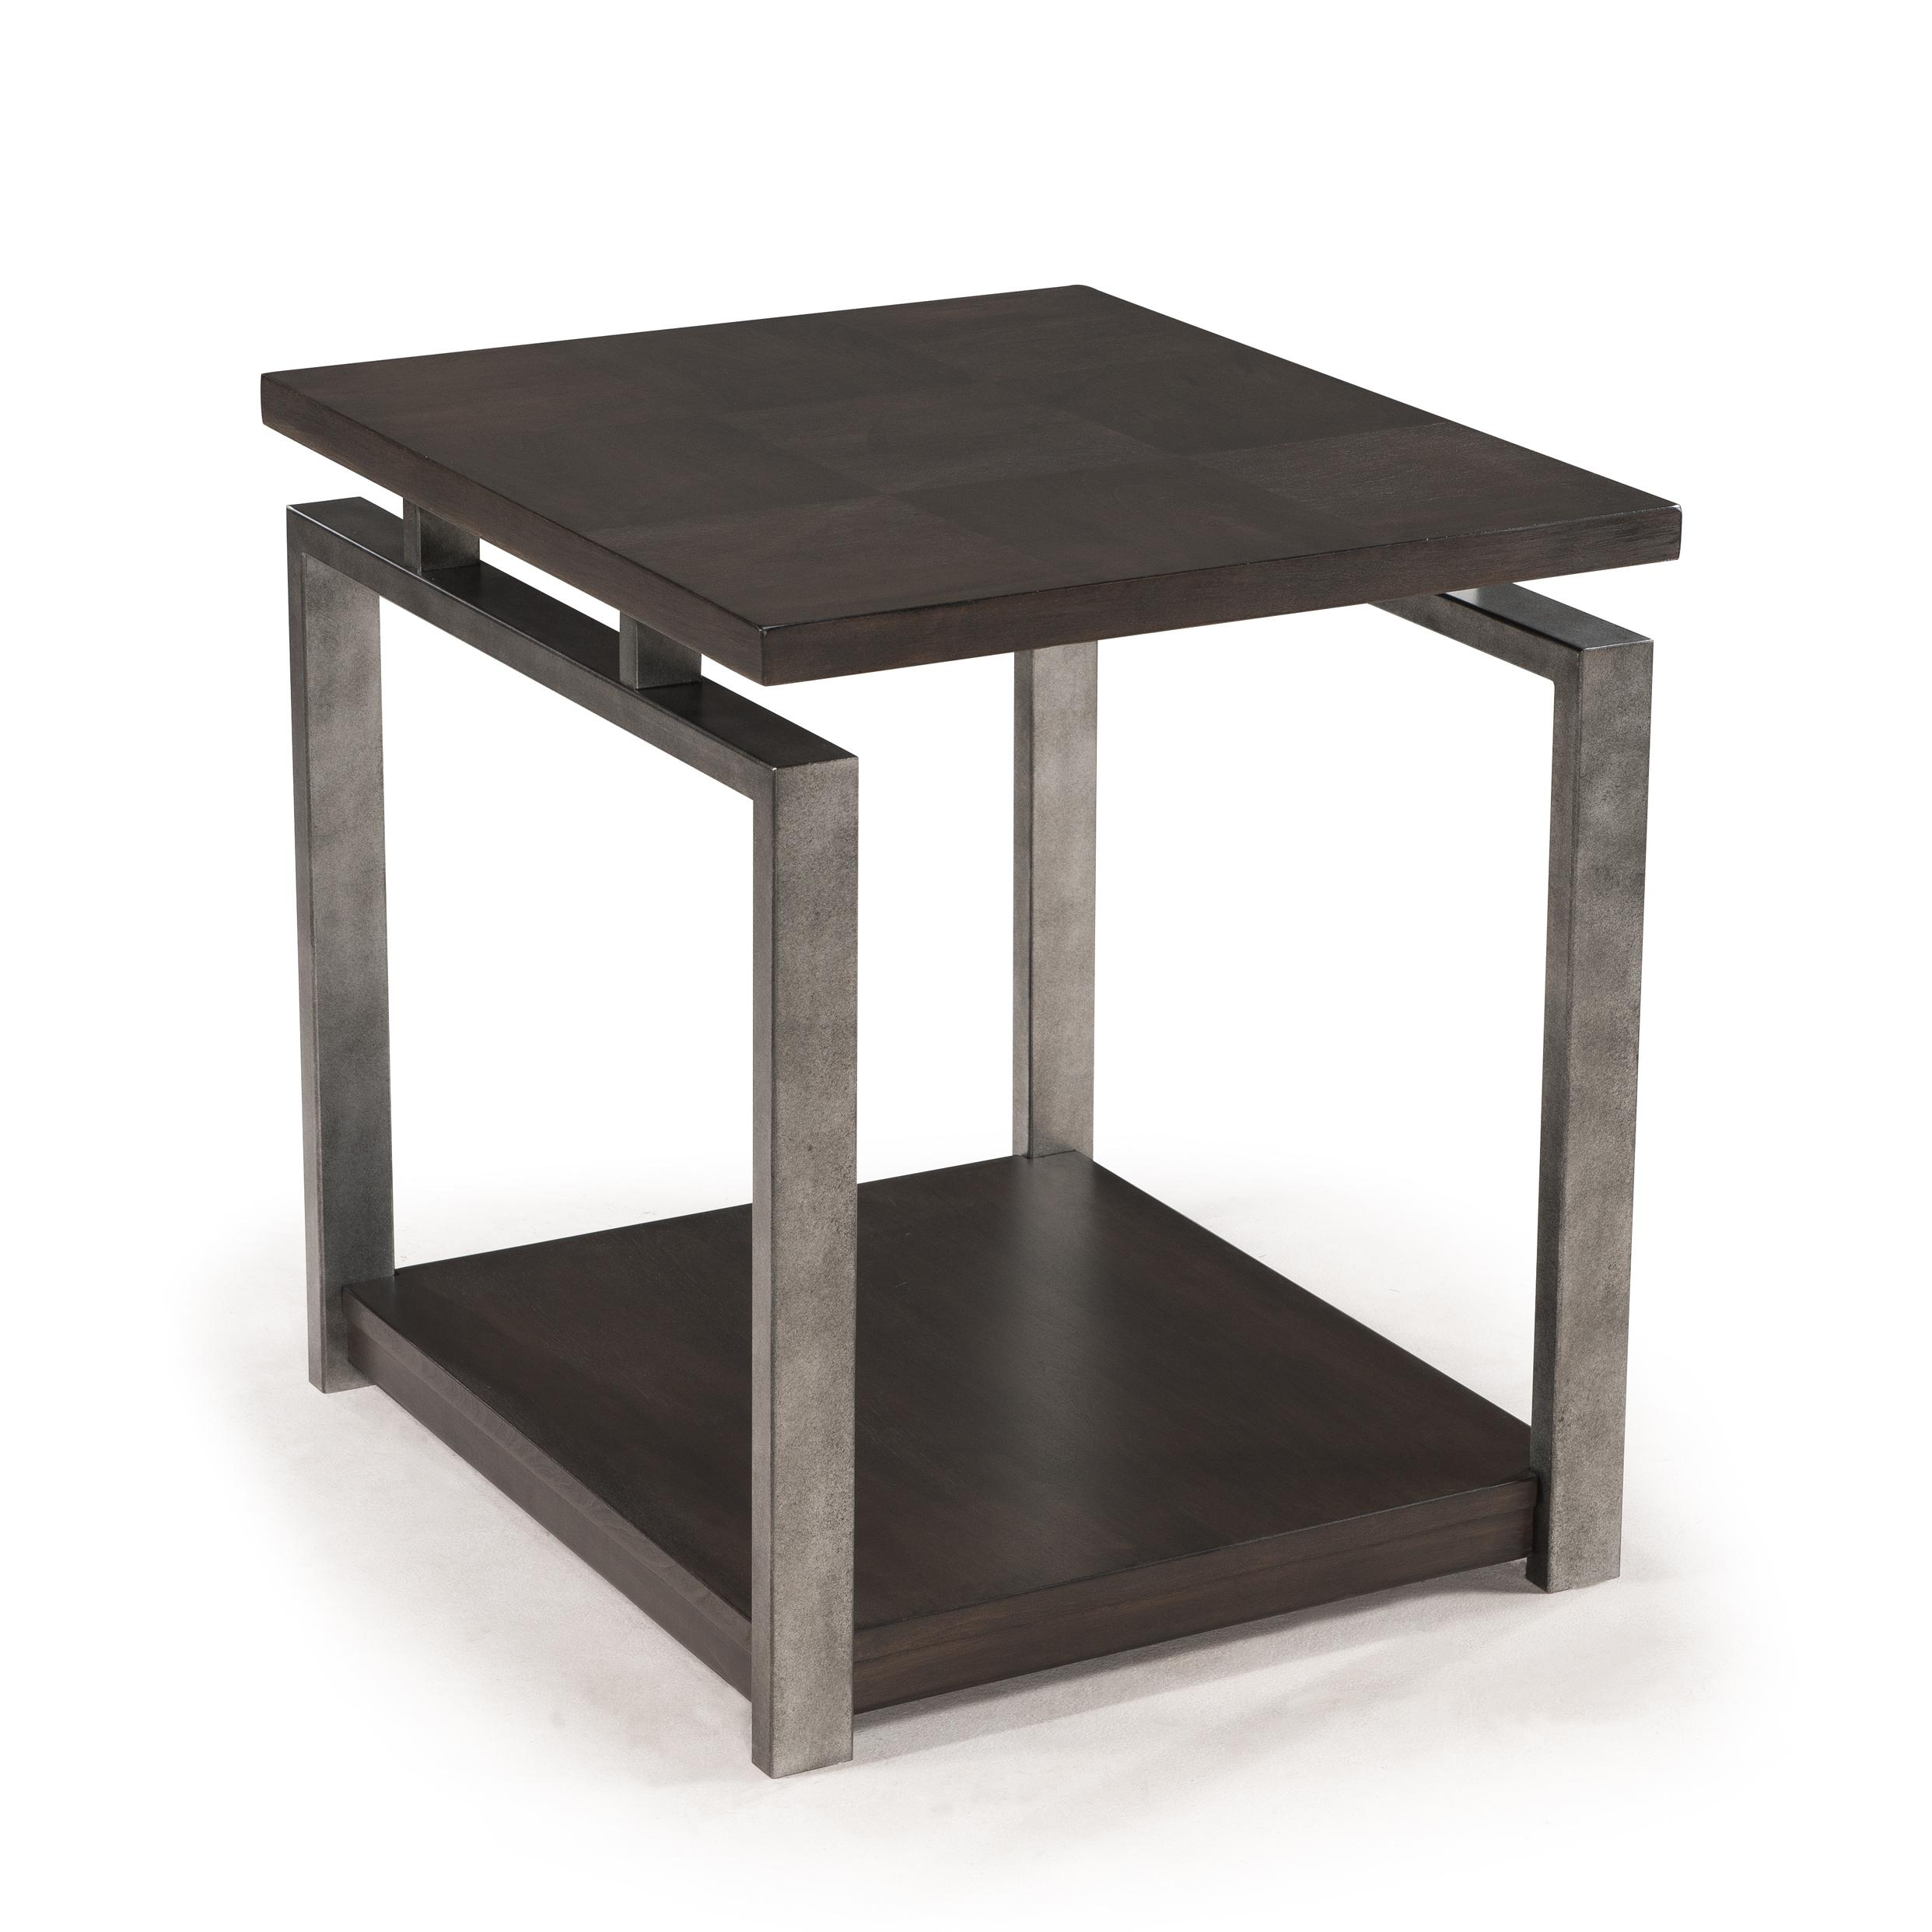 Alton Rectangular End Table by Magnussen Home at Baer's Furniture